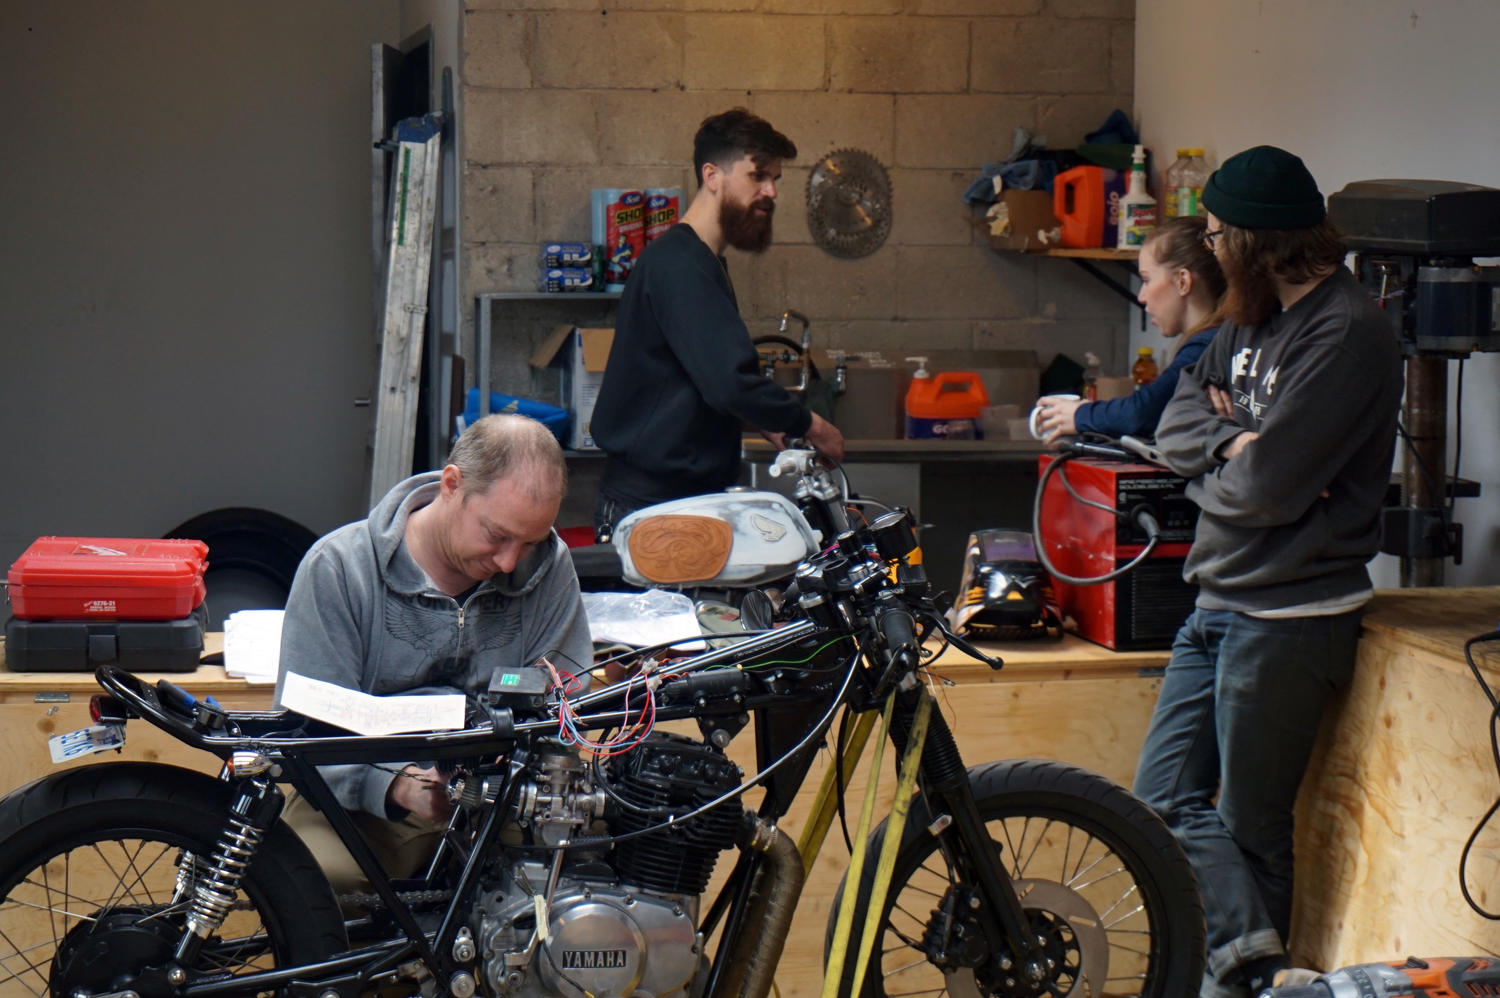 Moto revere diy motorcycle garage in toronto northern ontario travel currently there are 40 members and growing solutioingenieria Gallery